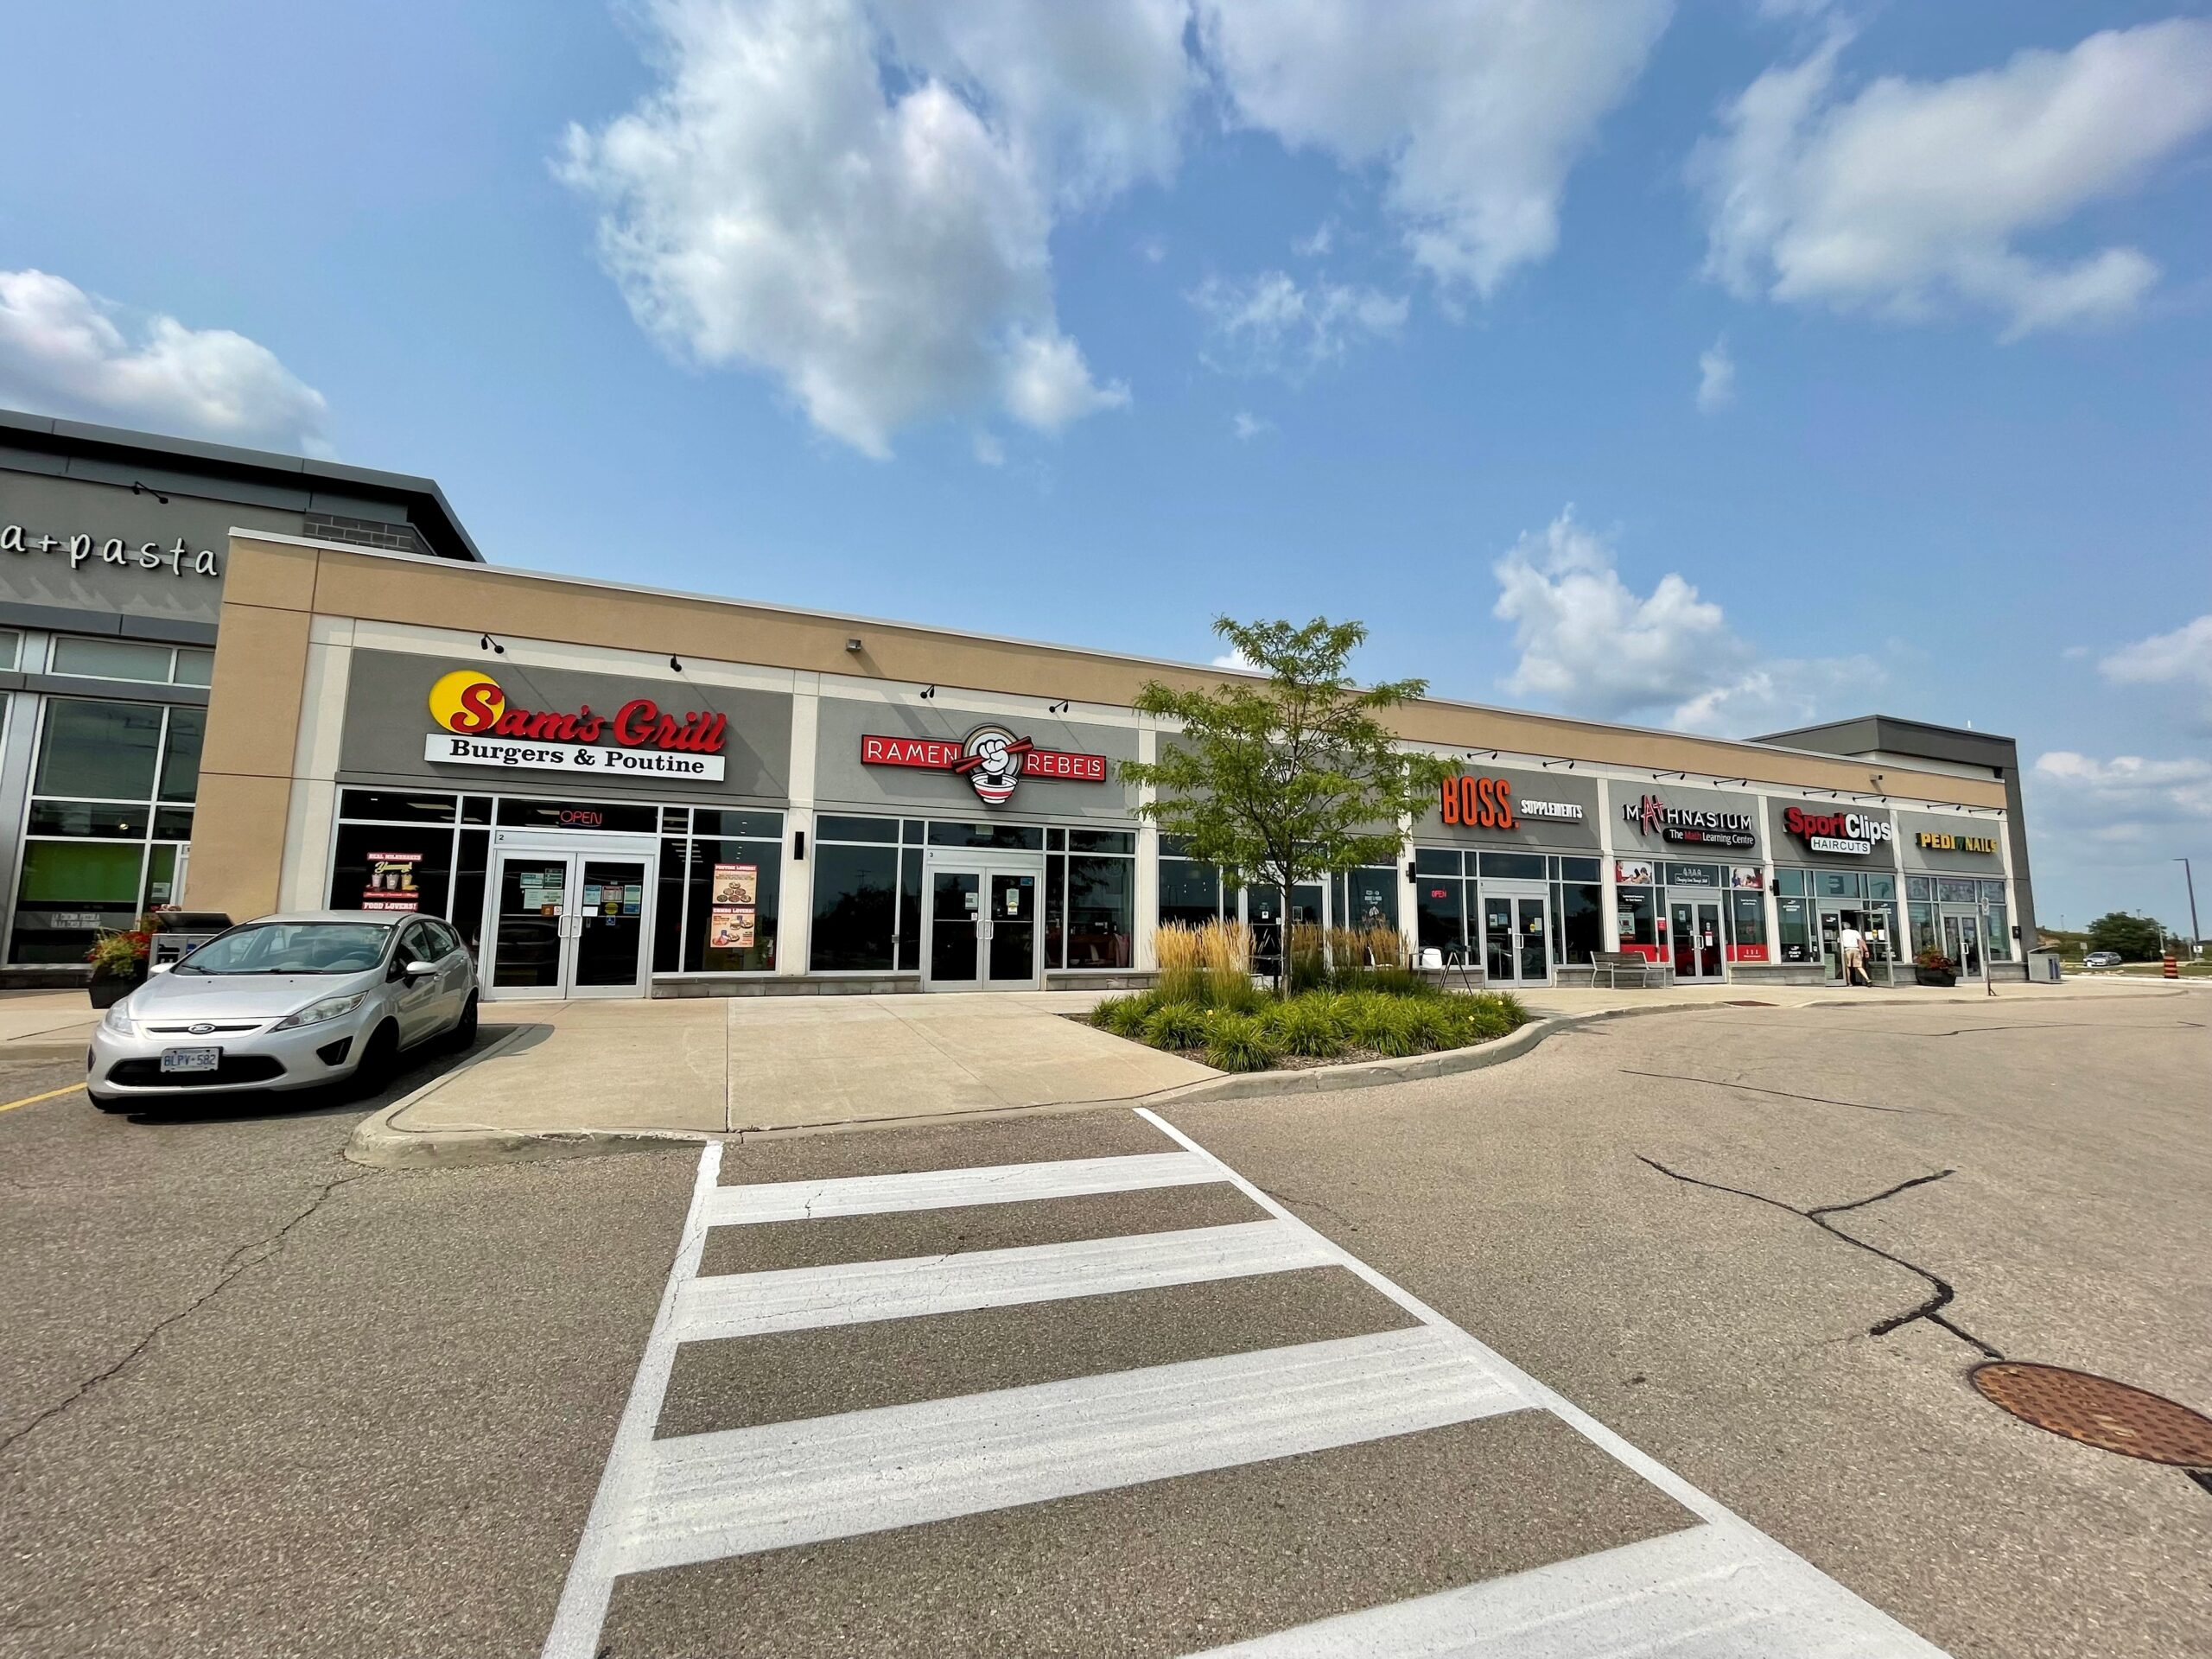 655 Parkside Drive (Unit #F3), Waterloo   Business for Sale